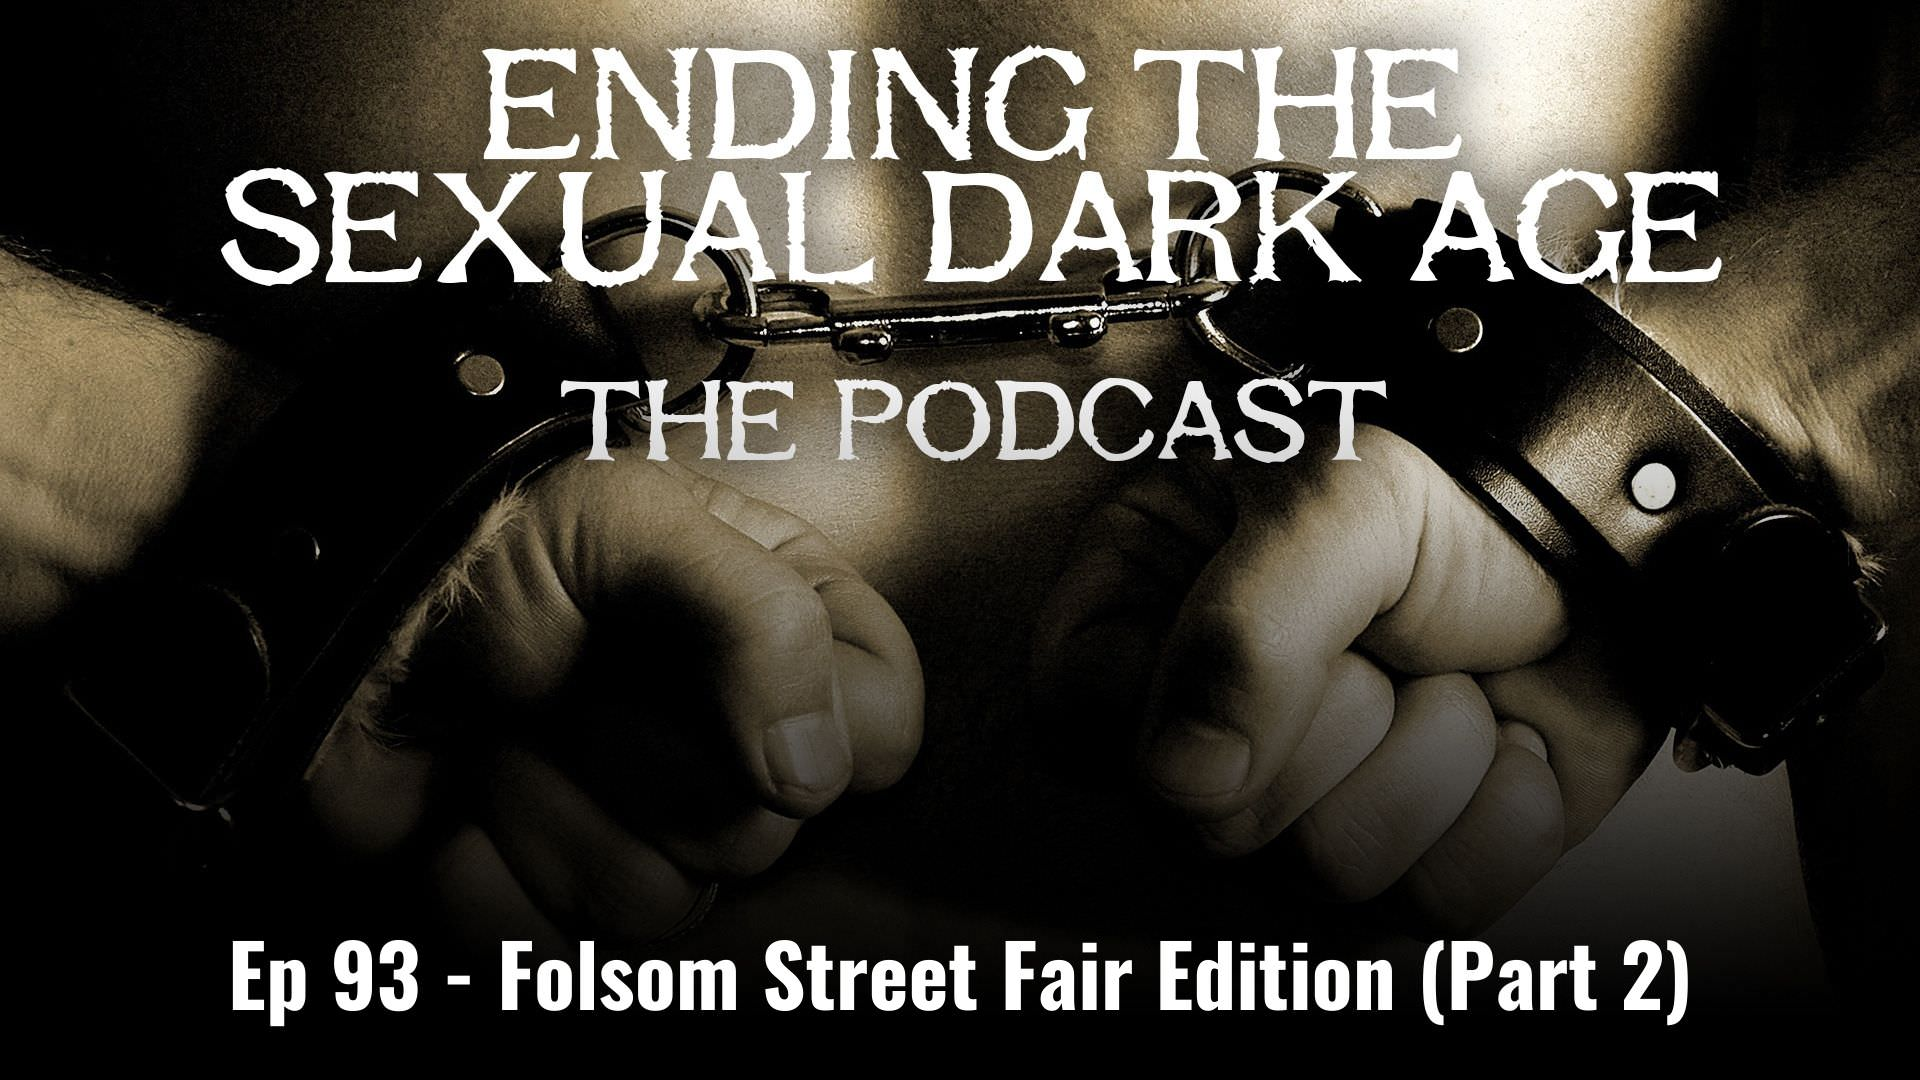 Episode 93 | Folsom Street Fair Edition, Part 2